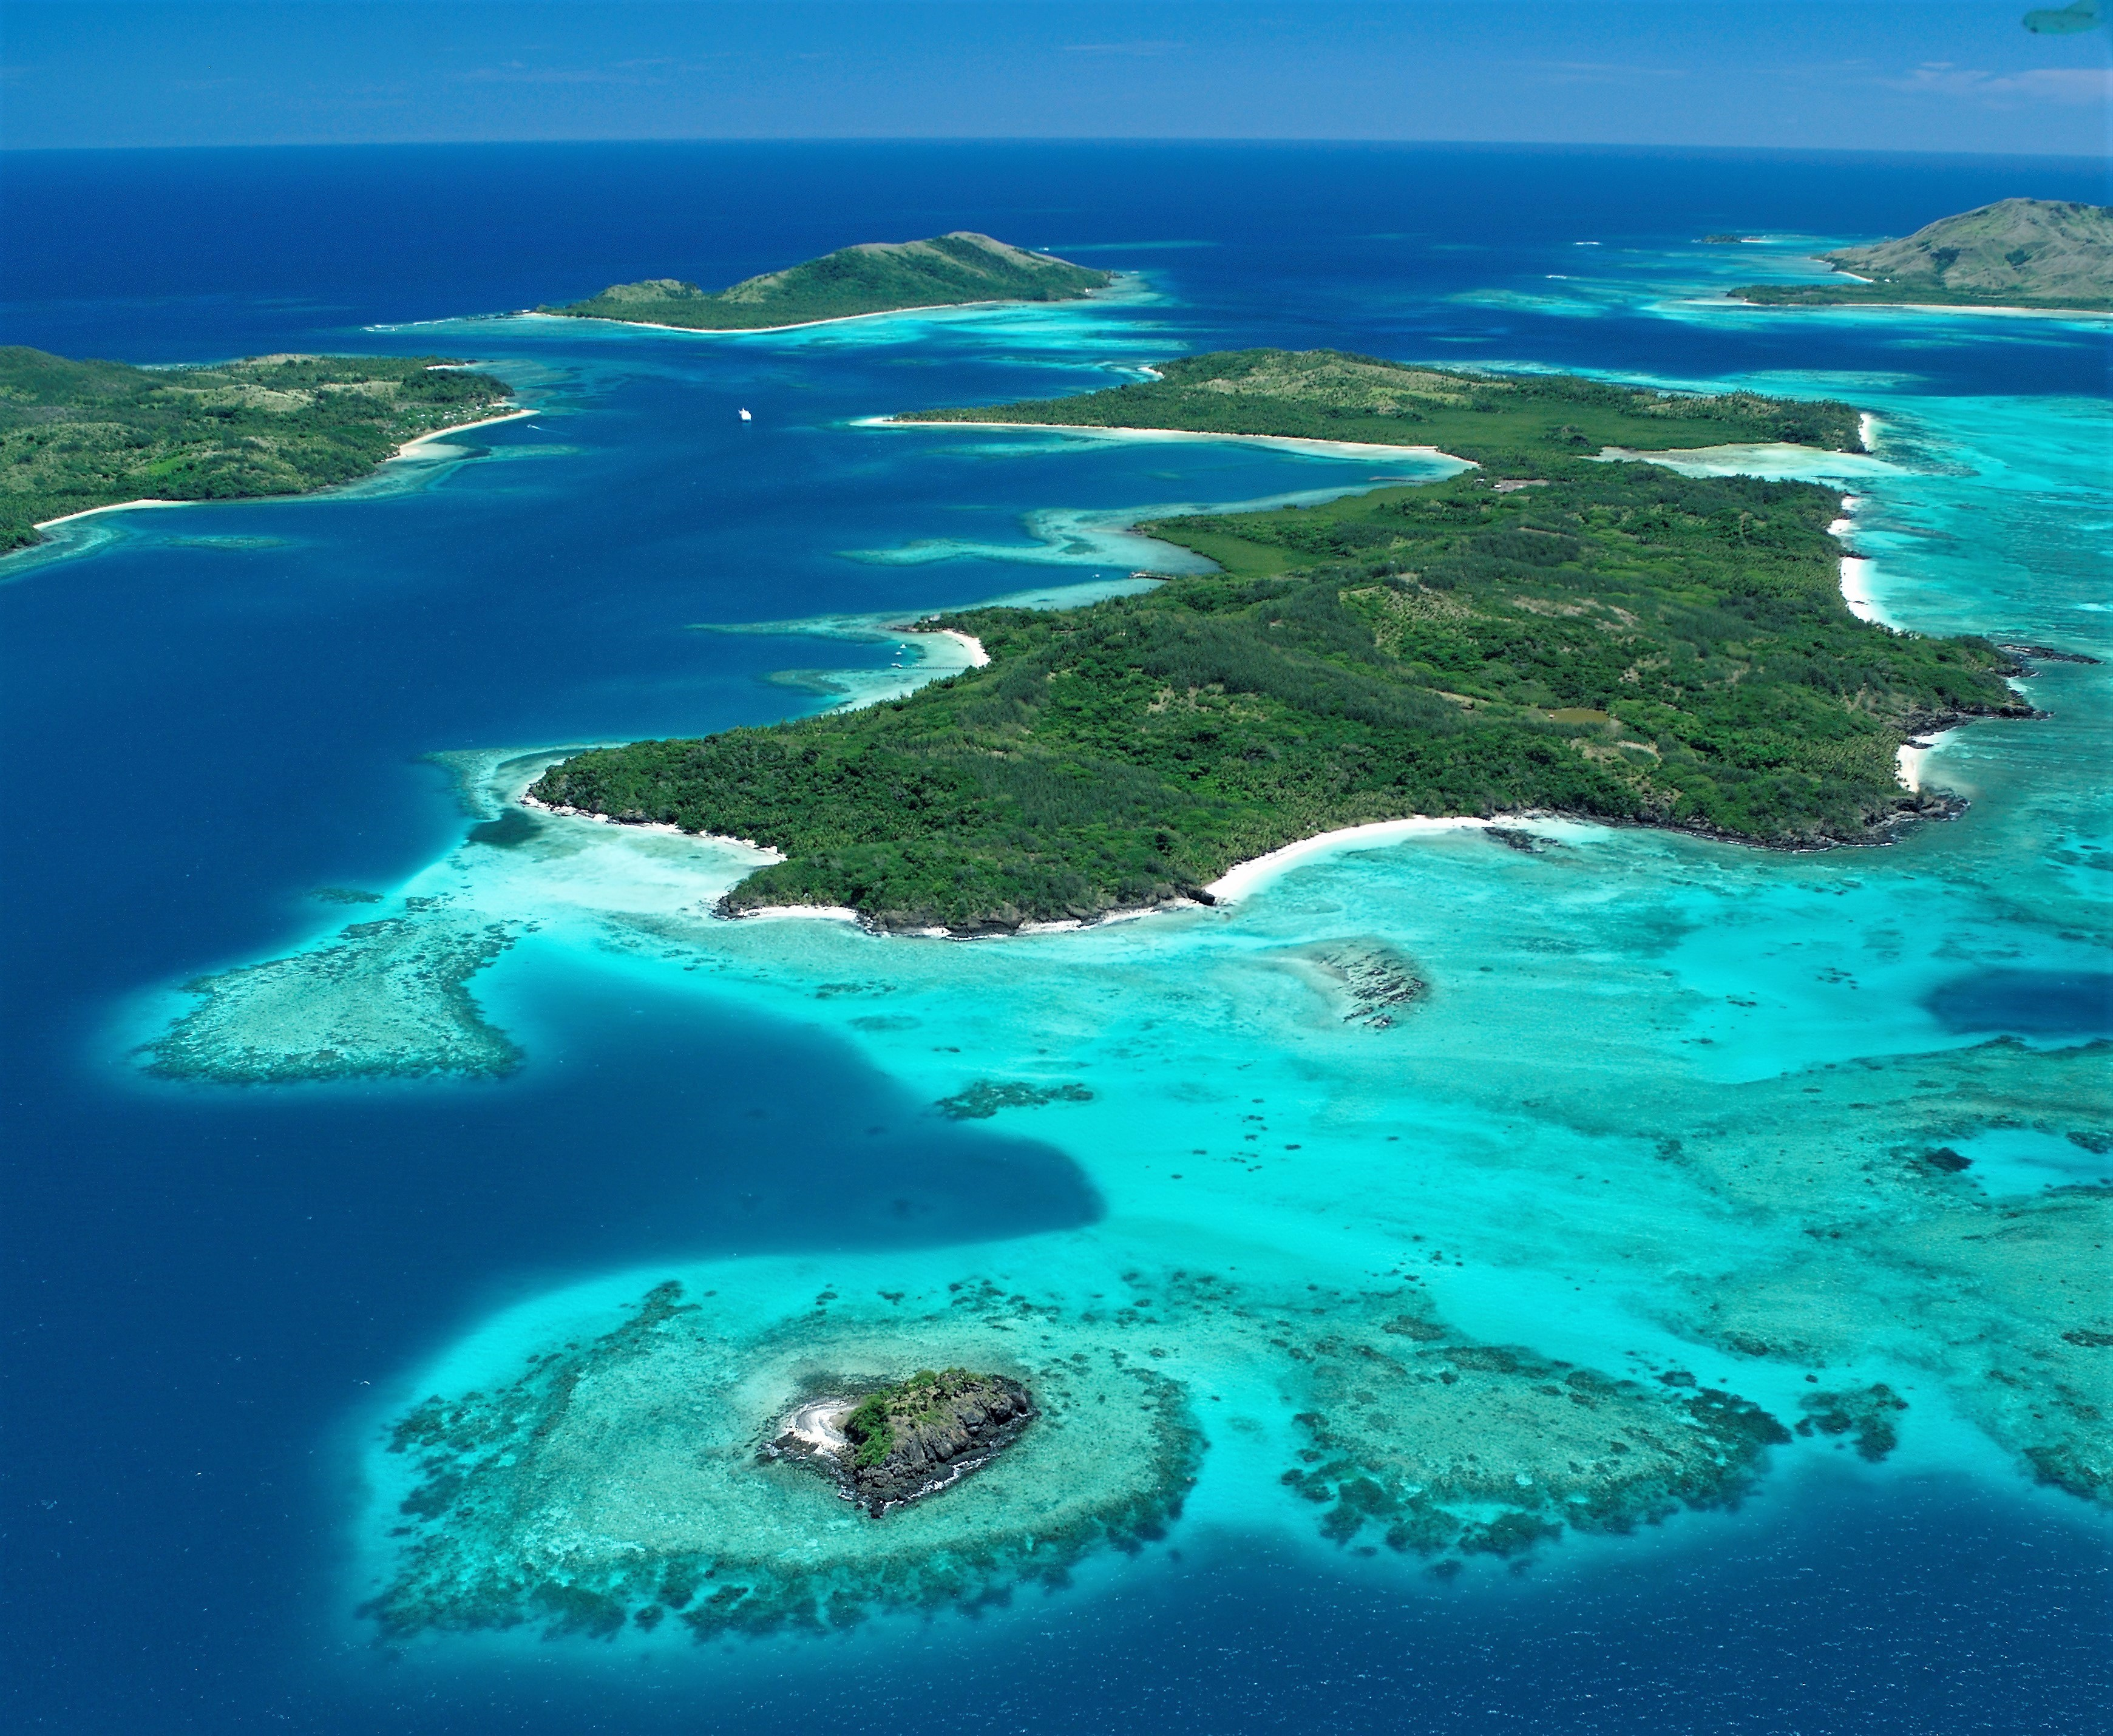 Aerial shot of the islands of Fiji